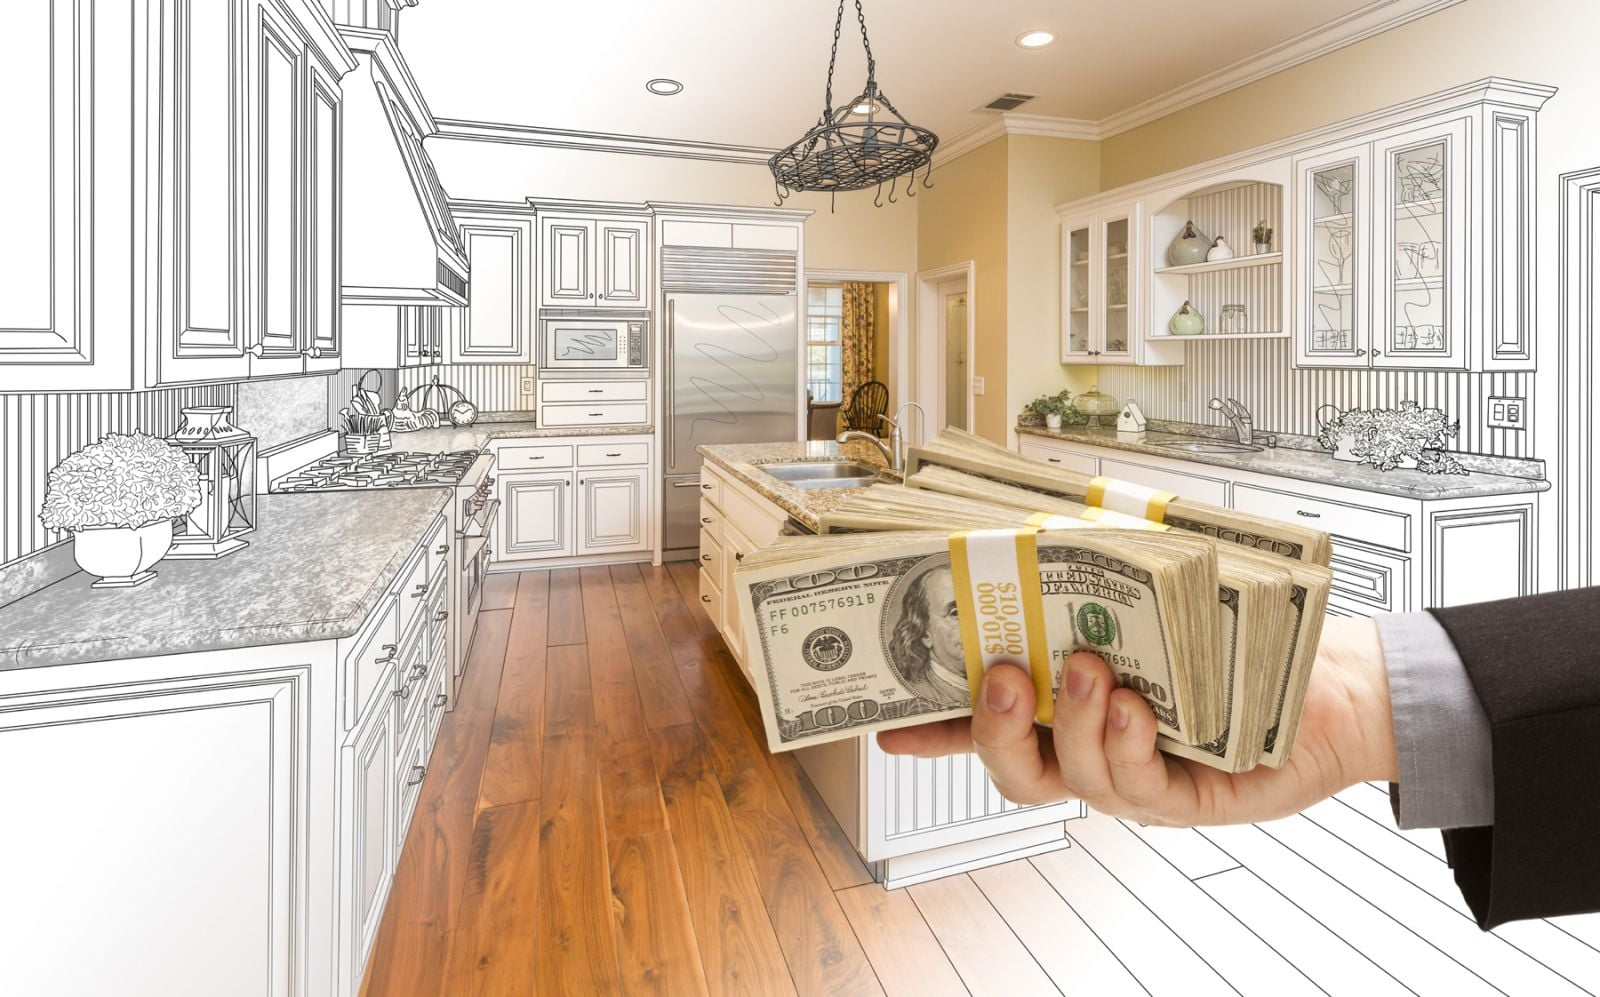 How much does it cost to remodel a kitchen  High Tech Pacific Builders